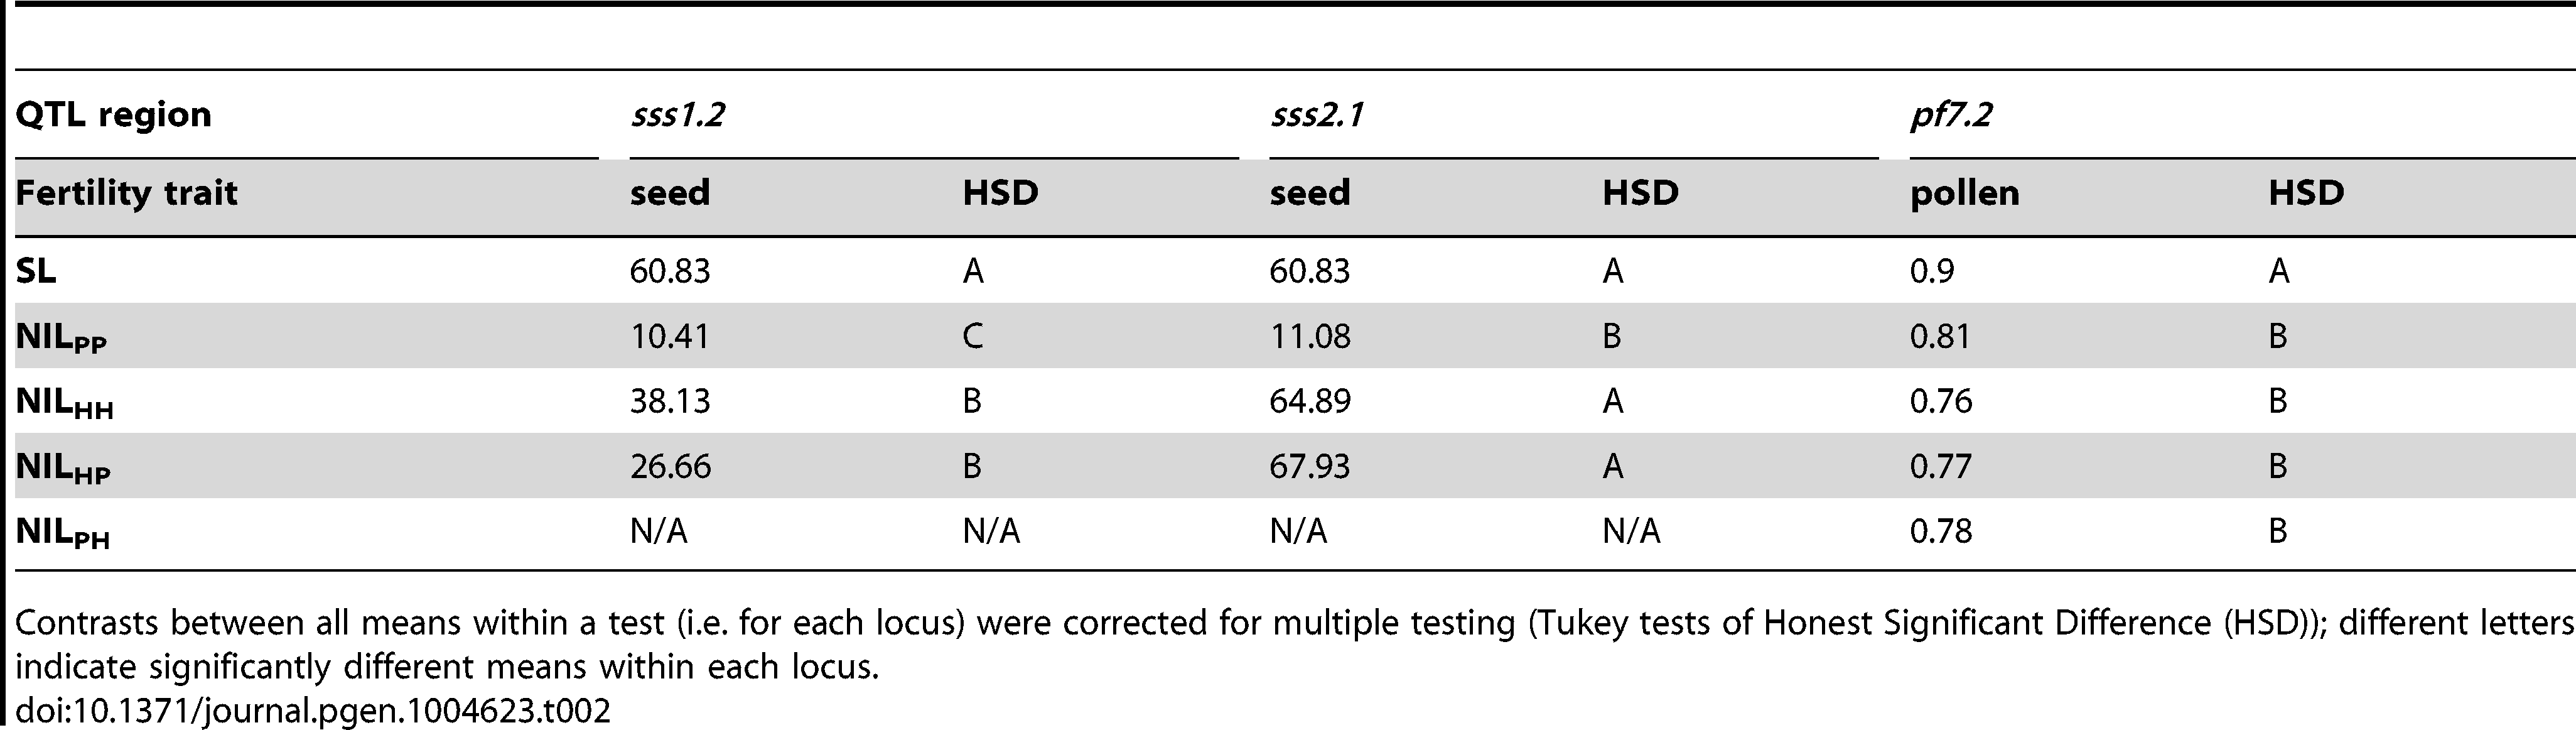 Genotype fertilities (least squares means) from tests of allelism at the three co-localized QTL.